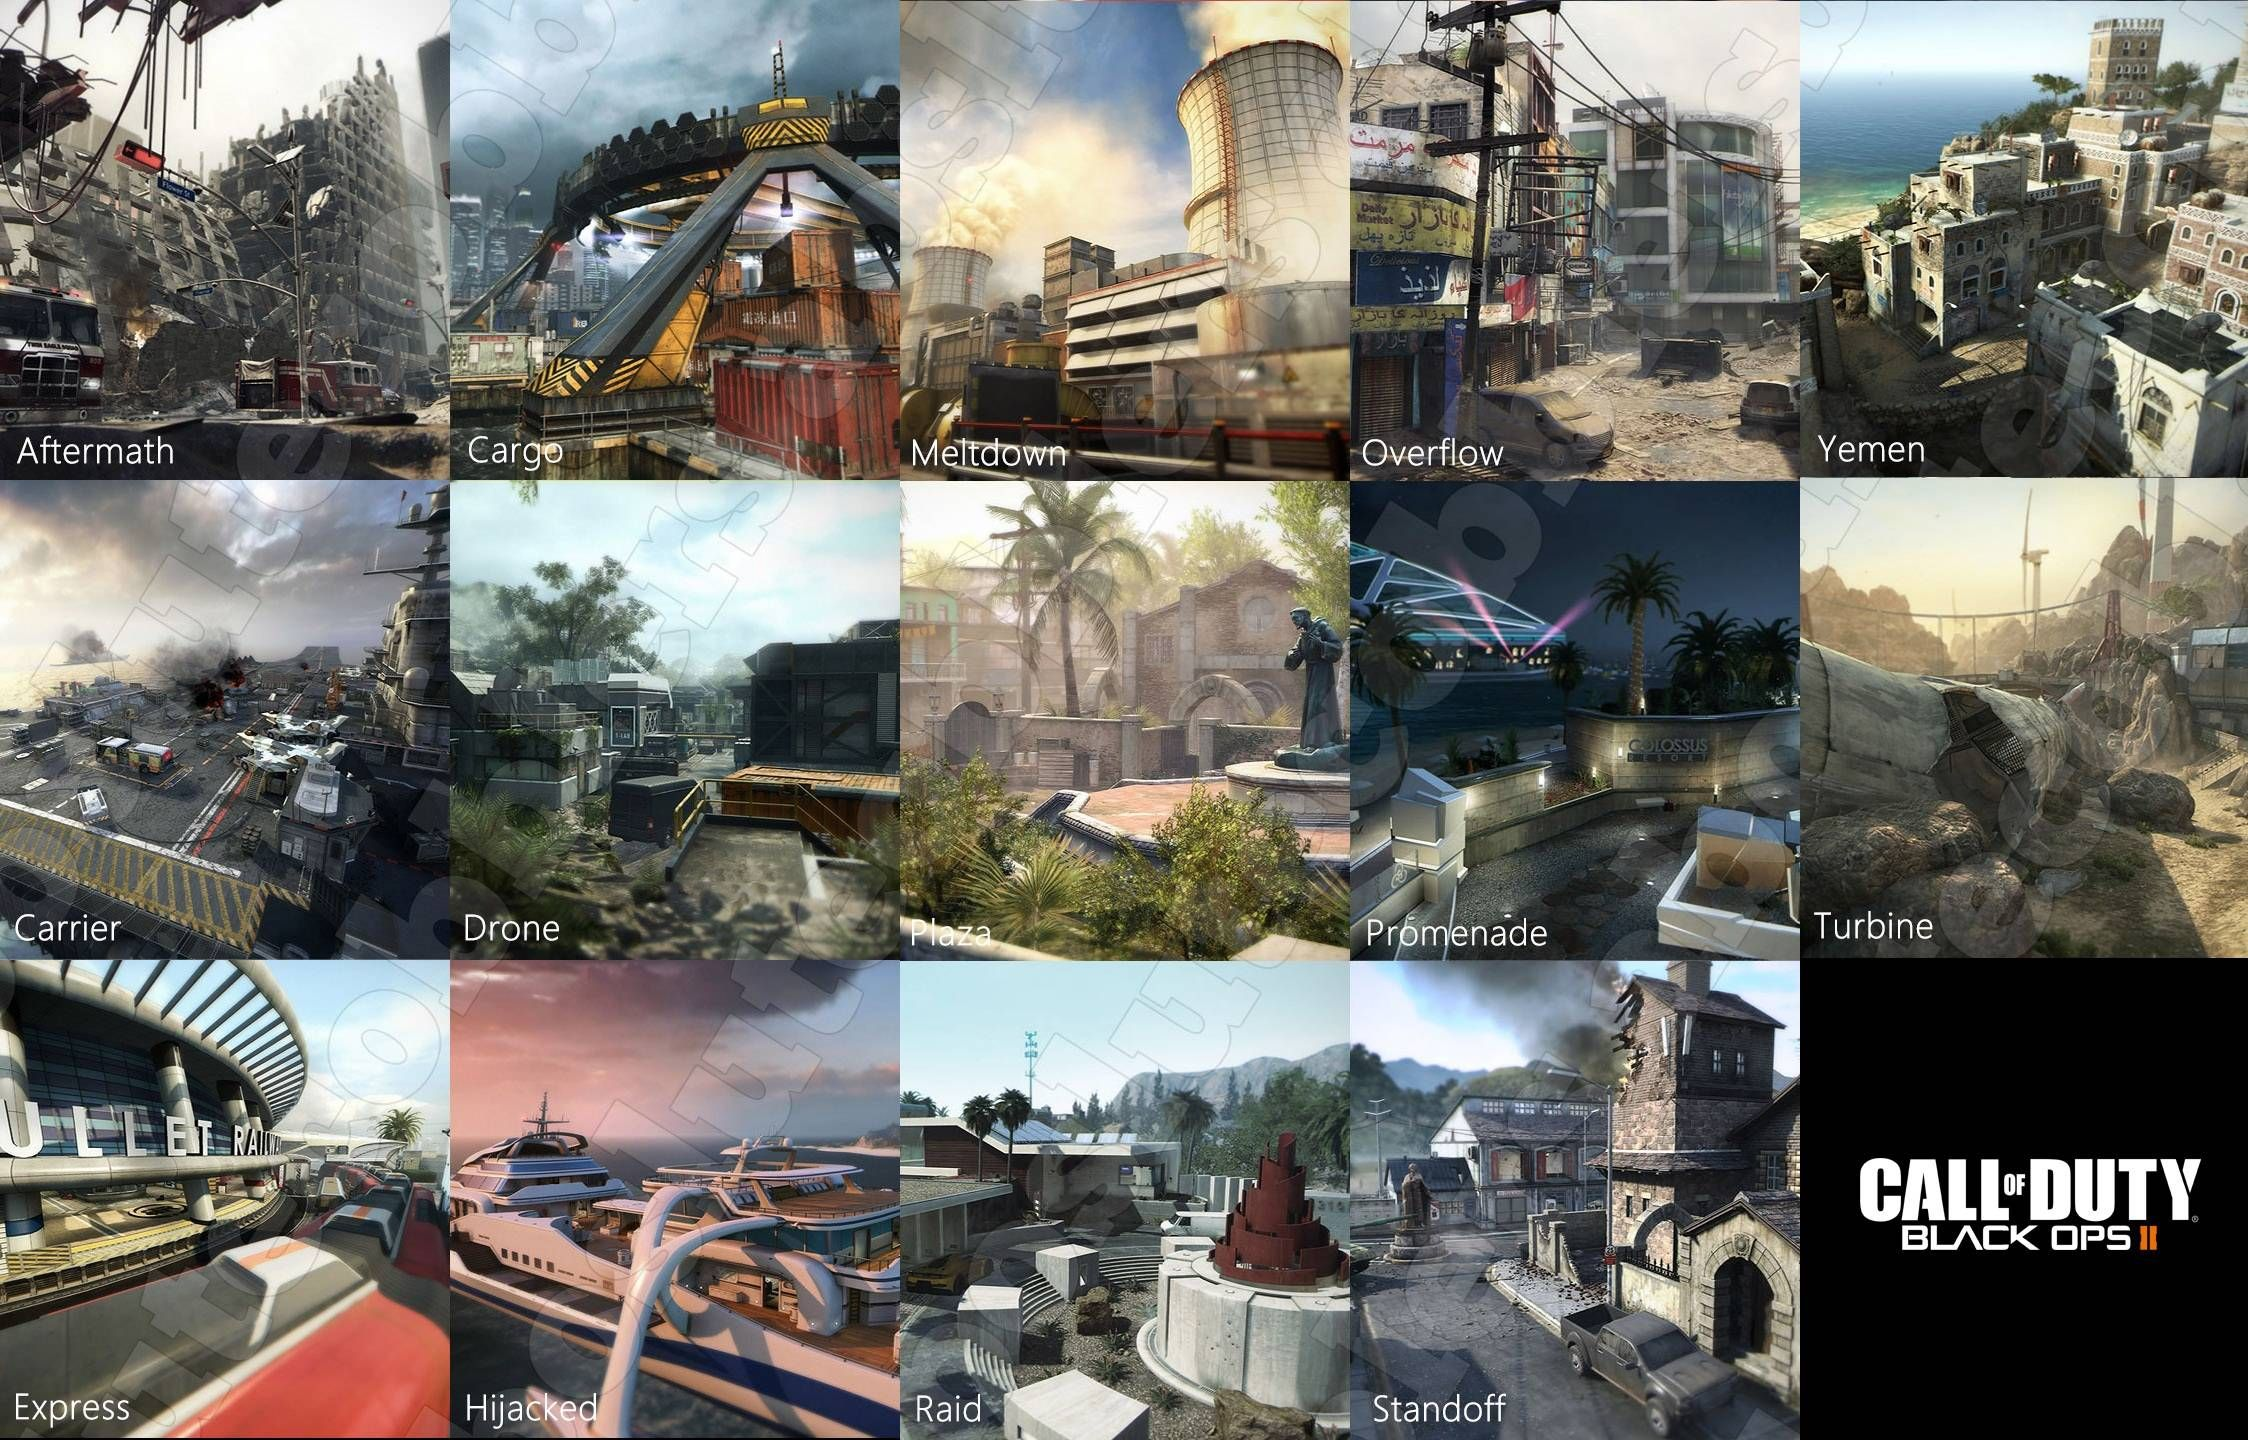 call of duty black ops  maps  black ops  maps  pinterest  - call of duty black ops  maps